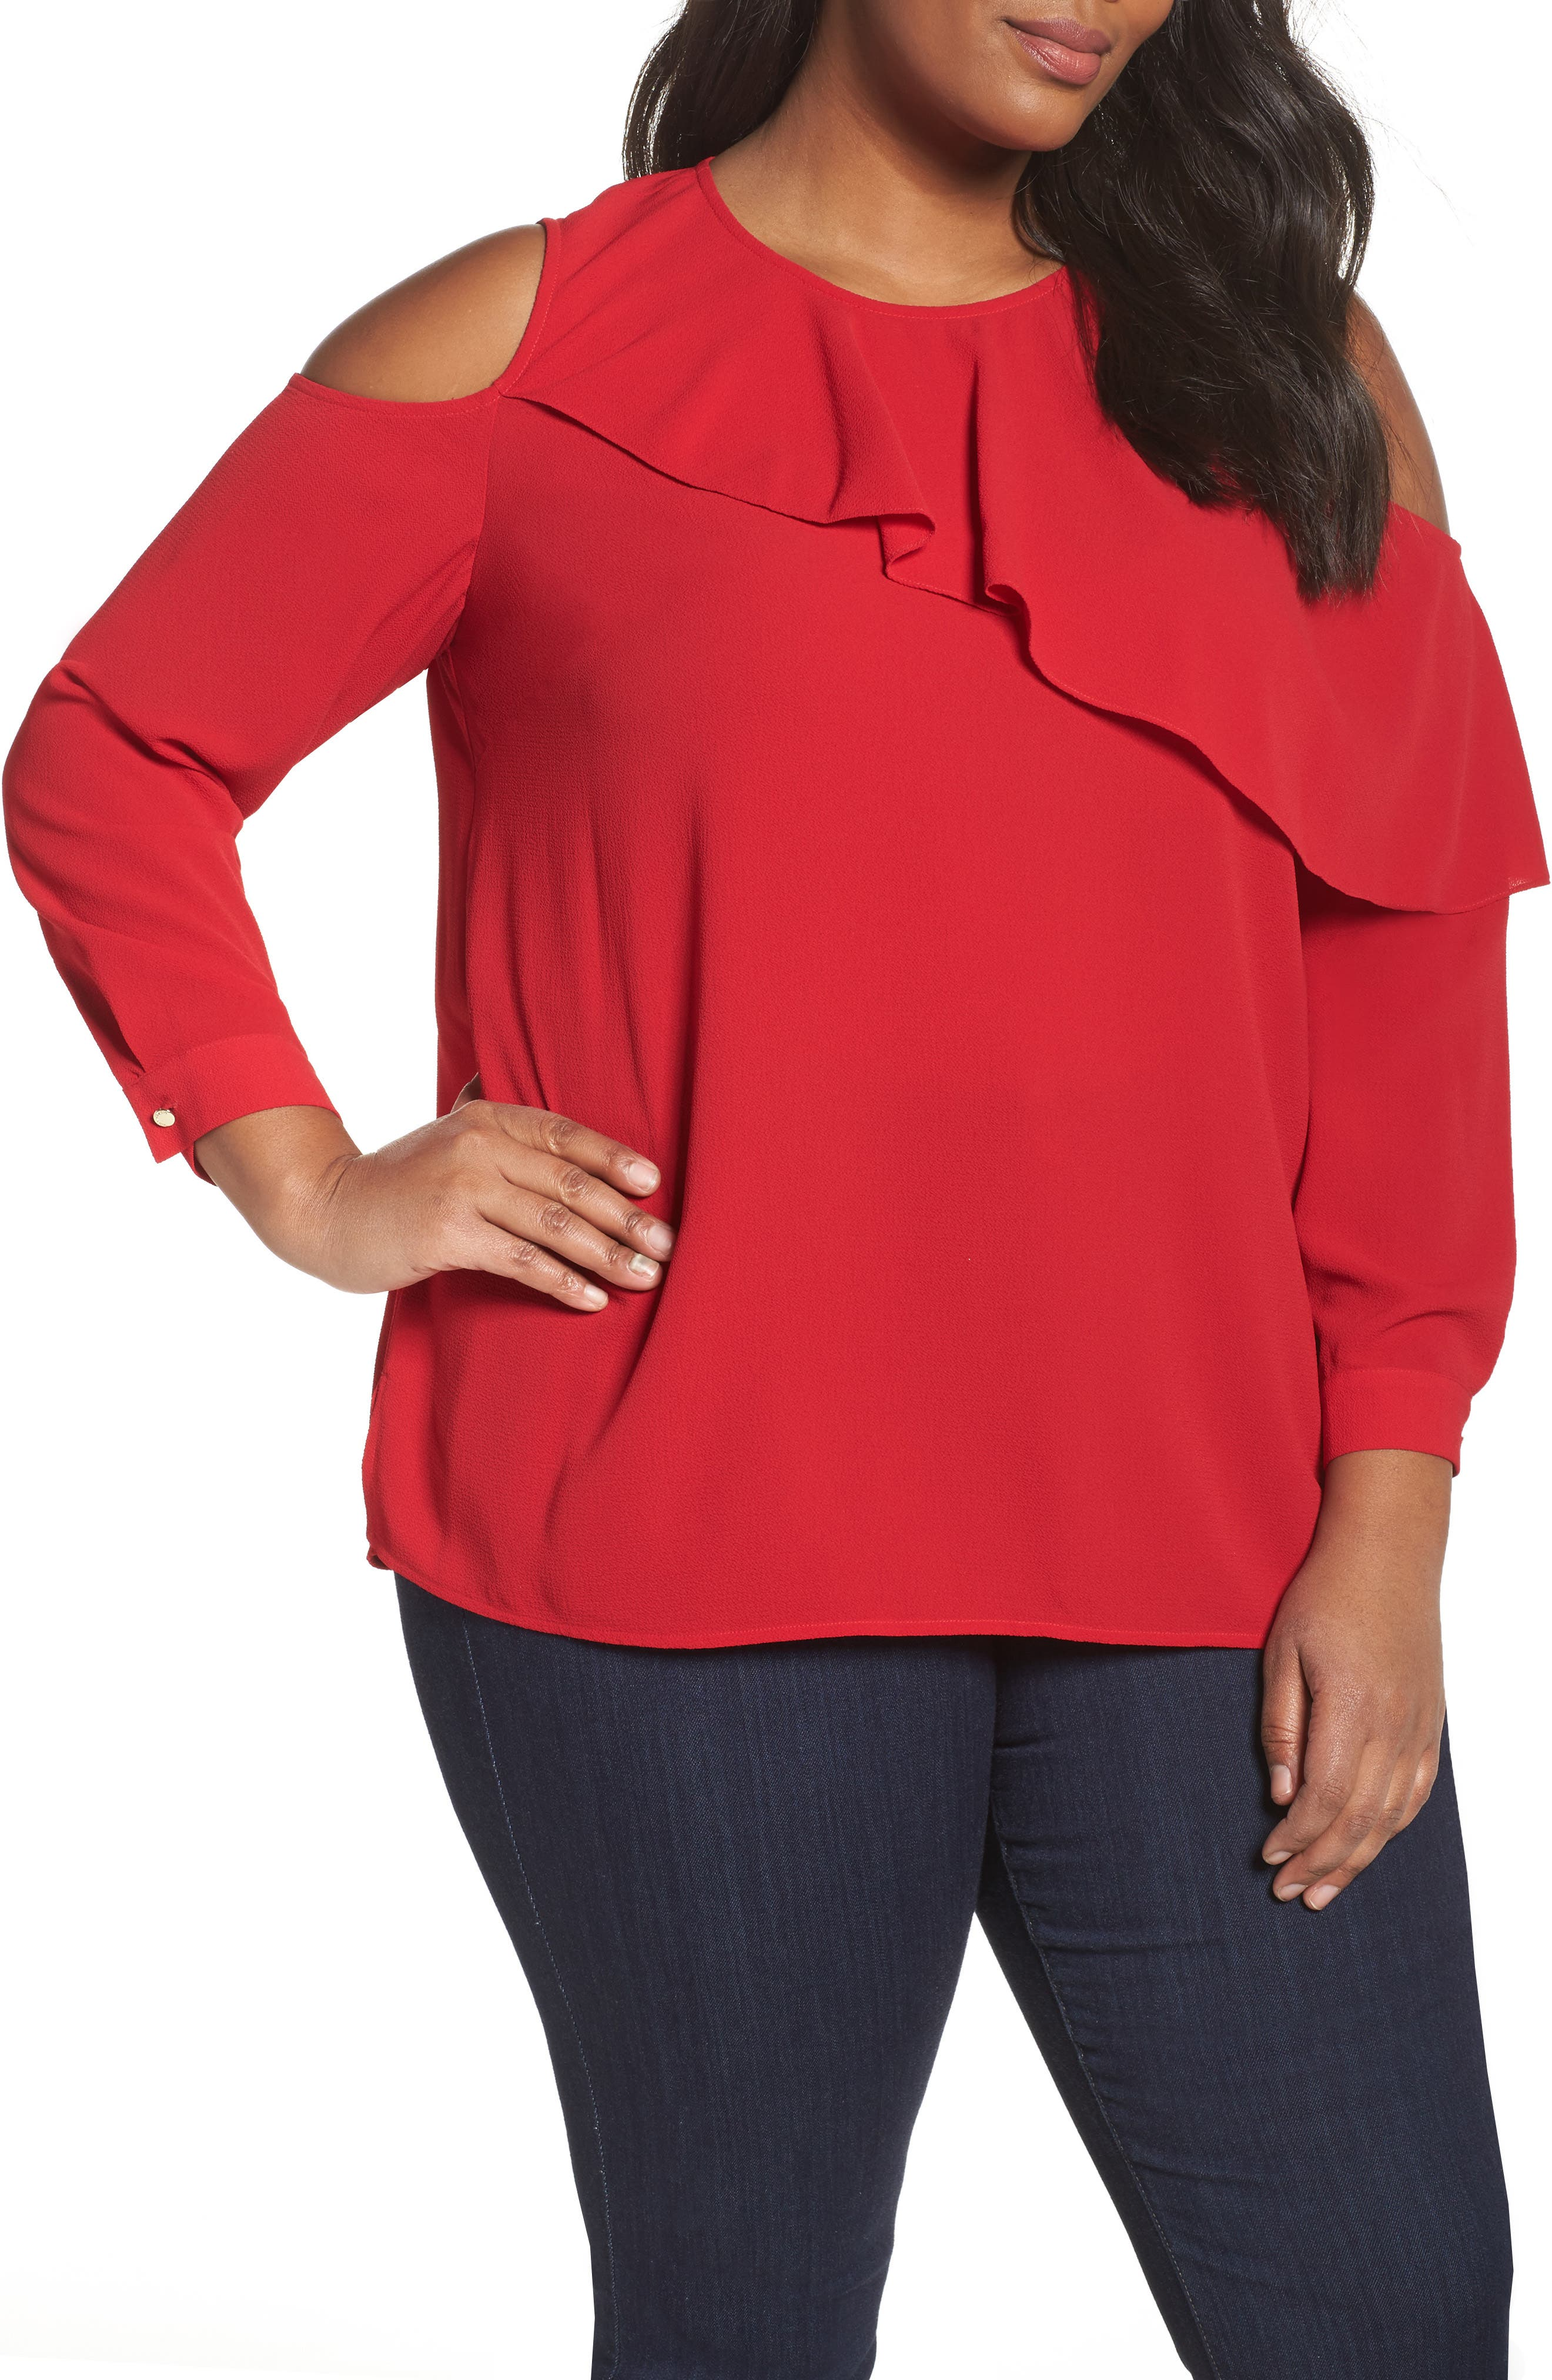 Alternate Image 1 Selected - Vince Camuto Asymmetrical Ruffle Cold Shoulder Top (Plus Size)